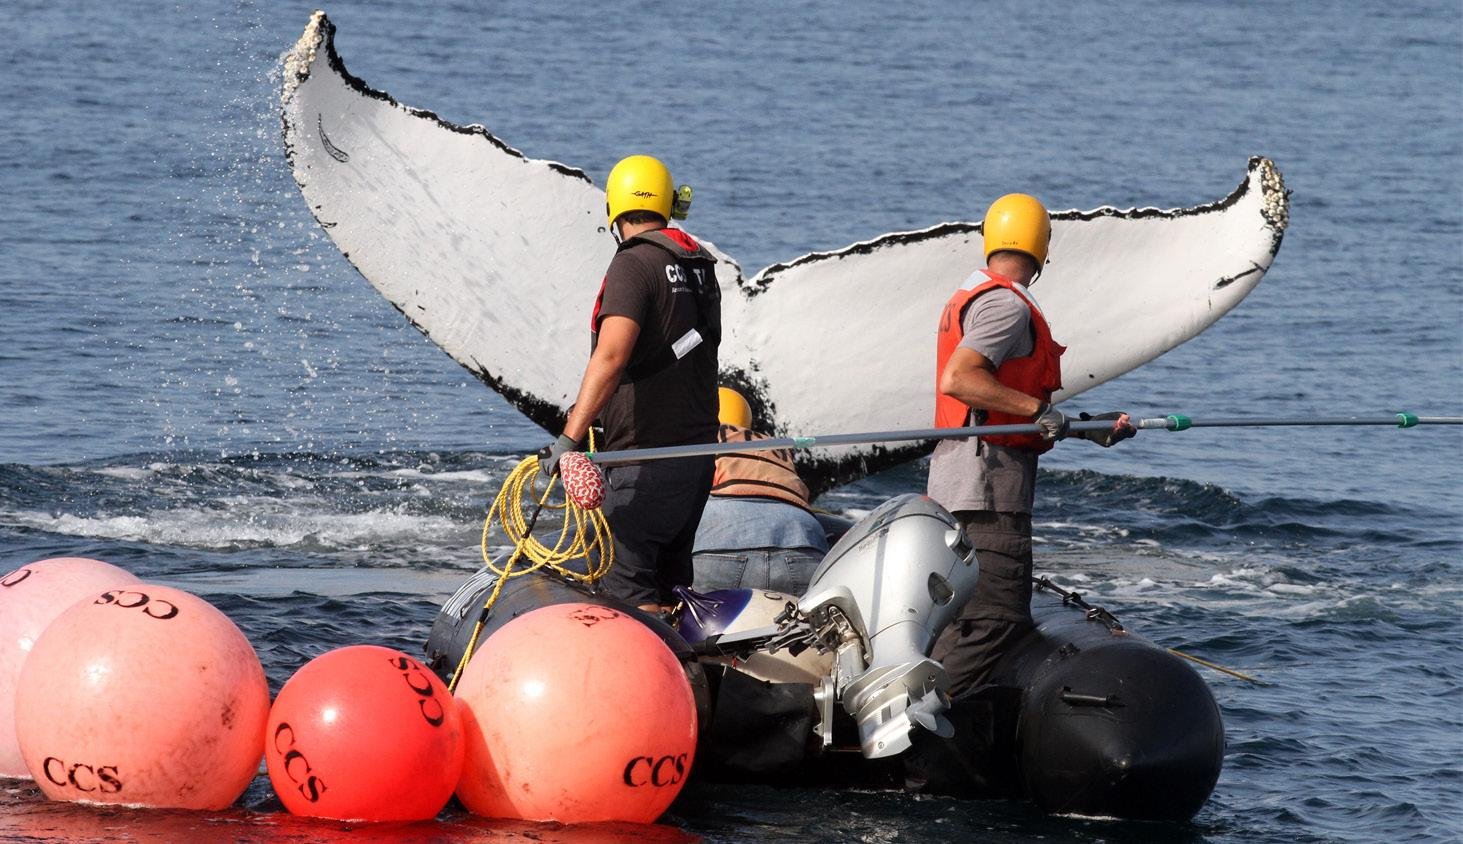 Page 38 of What do Atlantic Turtles, Pacific Whales and Pilots have in Common?